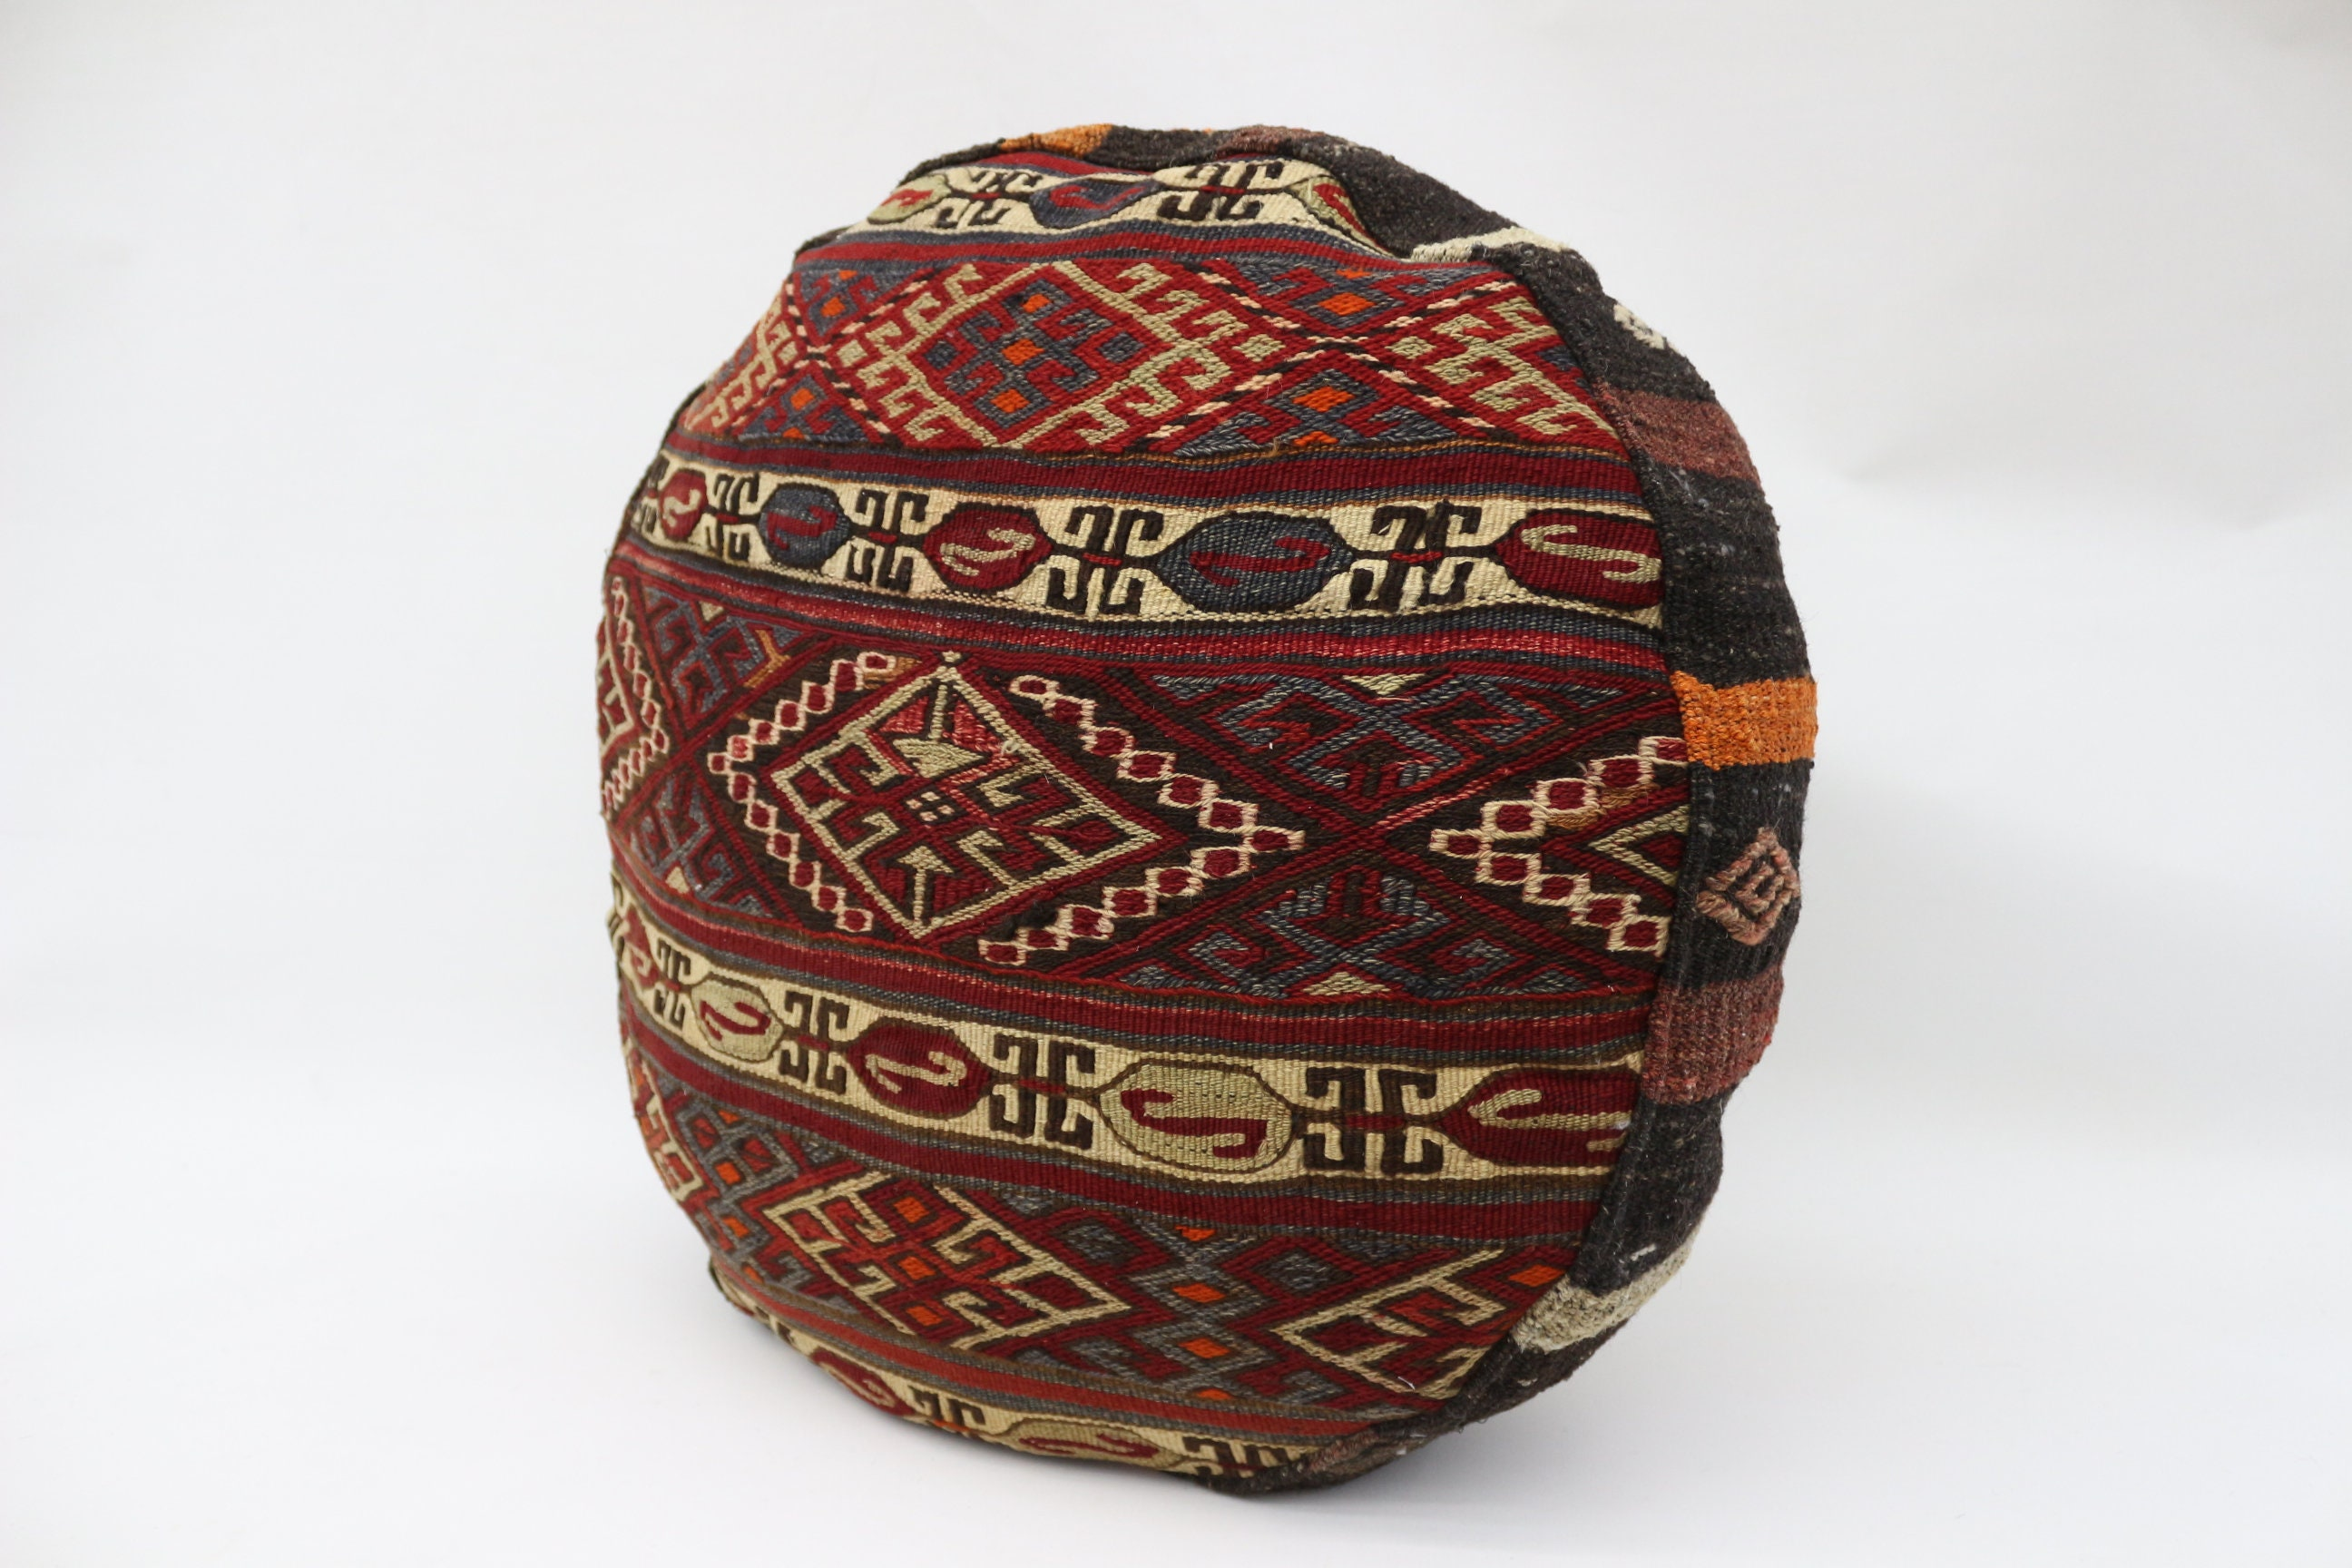 Embroidered Kilim Pouf,Camping Puff,24x24x6 Pear Seat, Brown Pouf,Circle Pouf,Floor Pillow Cover,Garden Pouf Pillow,Round Puffs SP606015 75